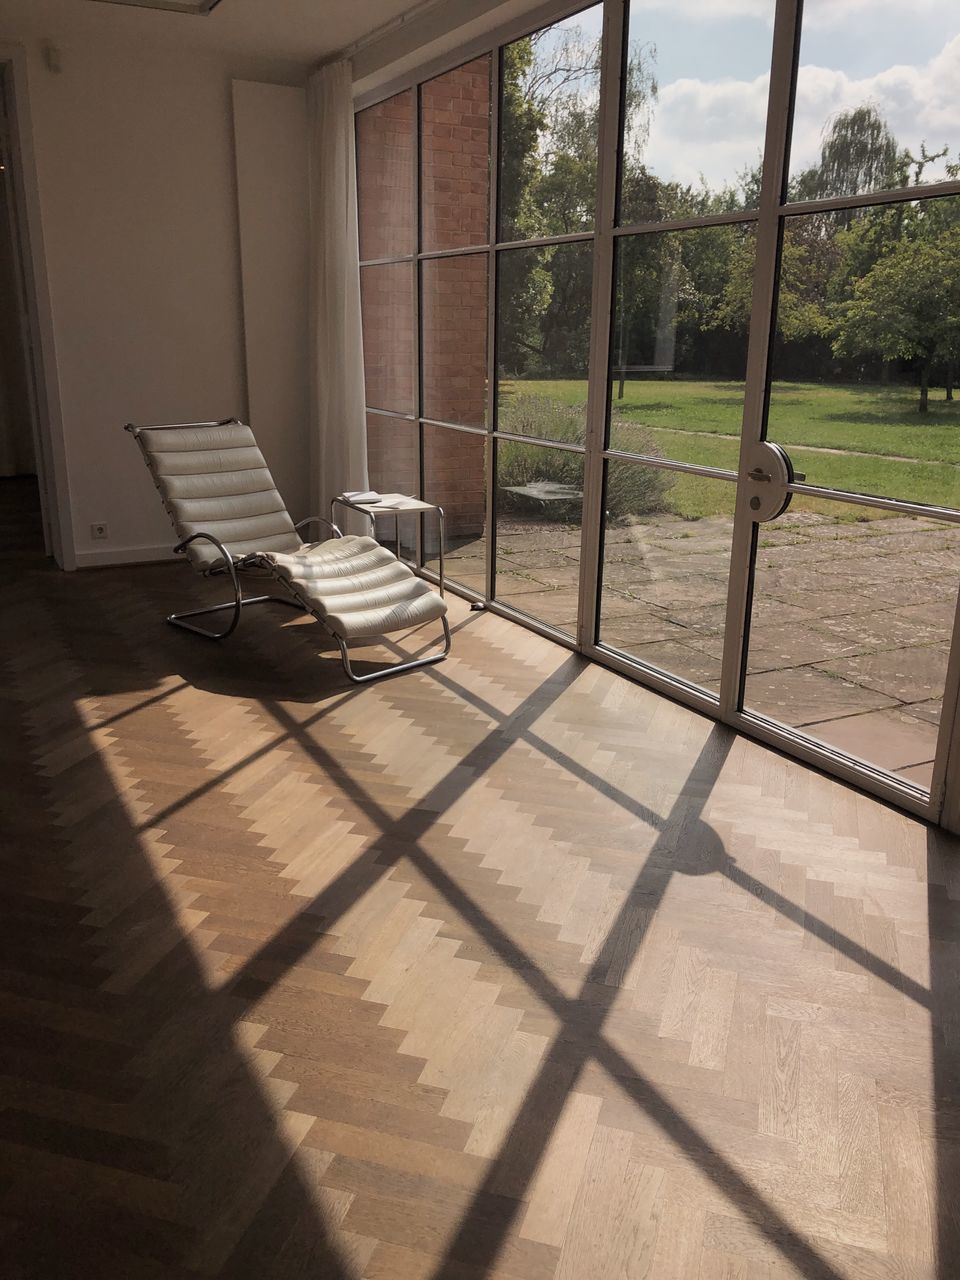 sunlight, shadow, window, day, indoors, no people, nature, flooring, architecture, absence, seat, tree, wood, glass - material, domestic room, wood - material, door, entrance, transparent